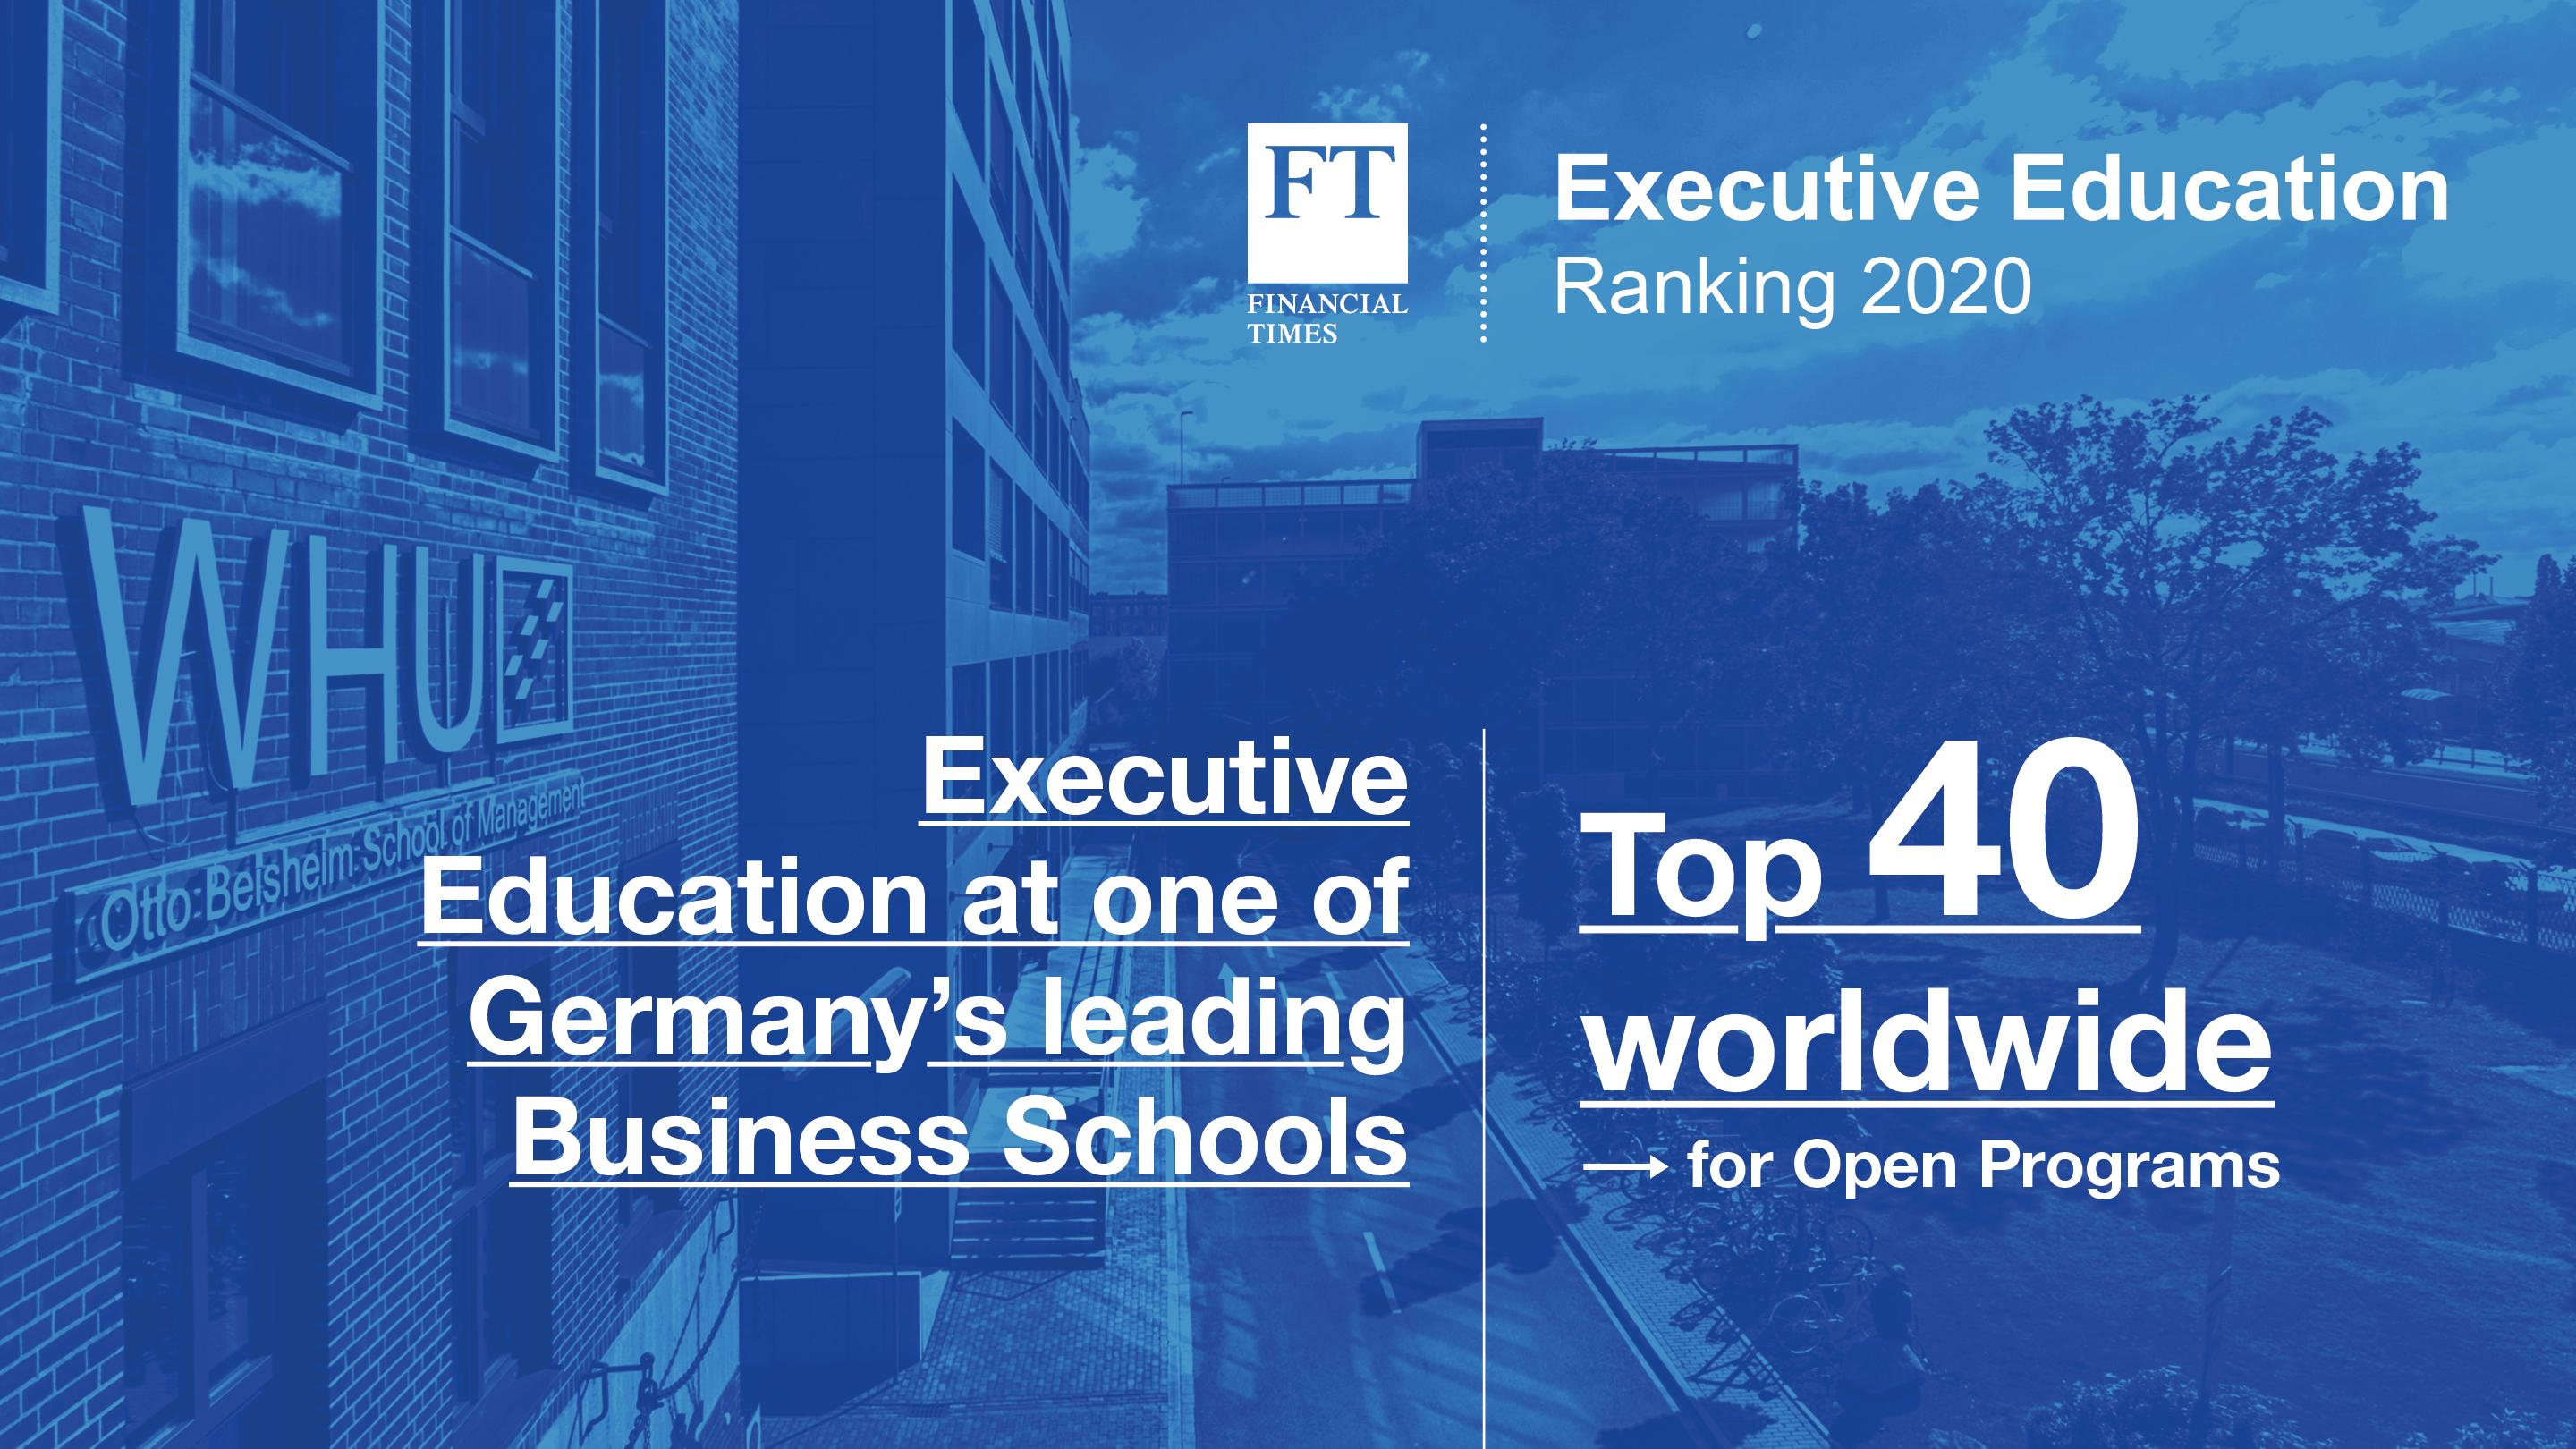 Financial Times Executive Education Ranking